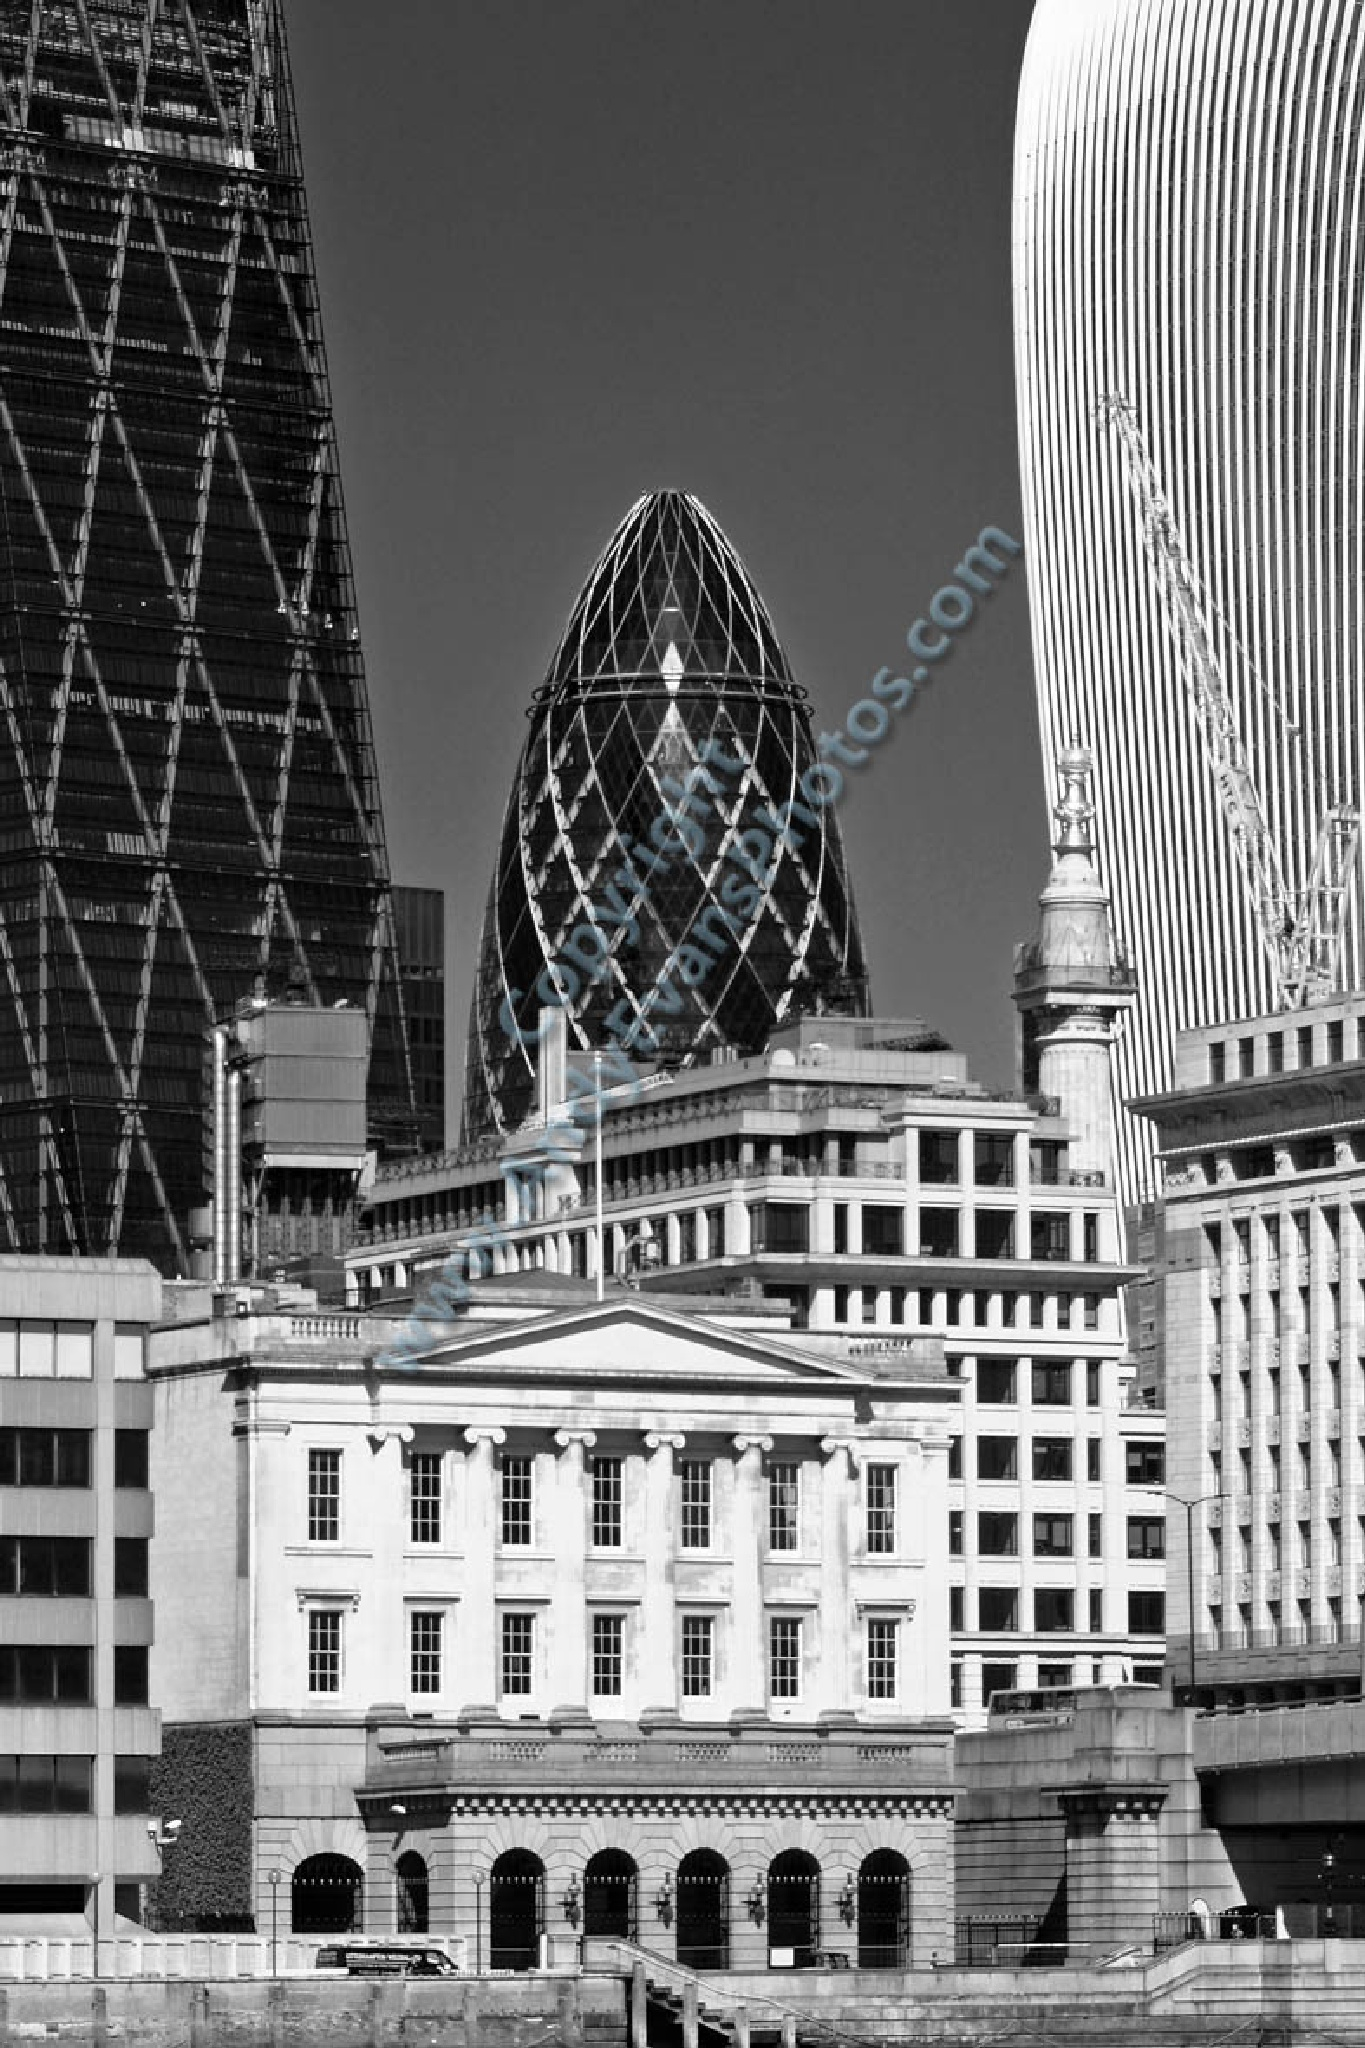 30 St Mary Axe, The Gherkin, City of London, England by AndyEvans